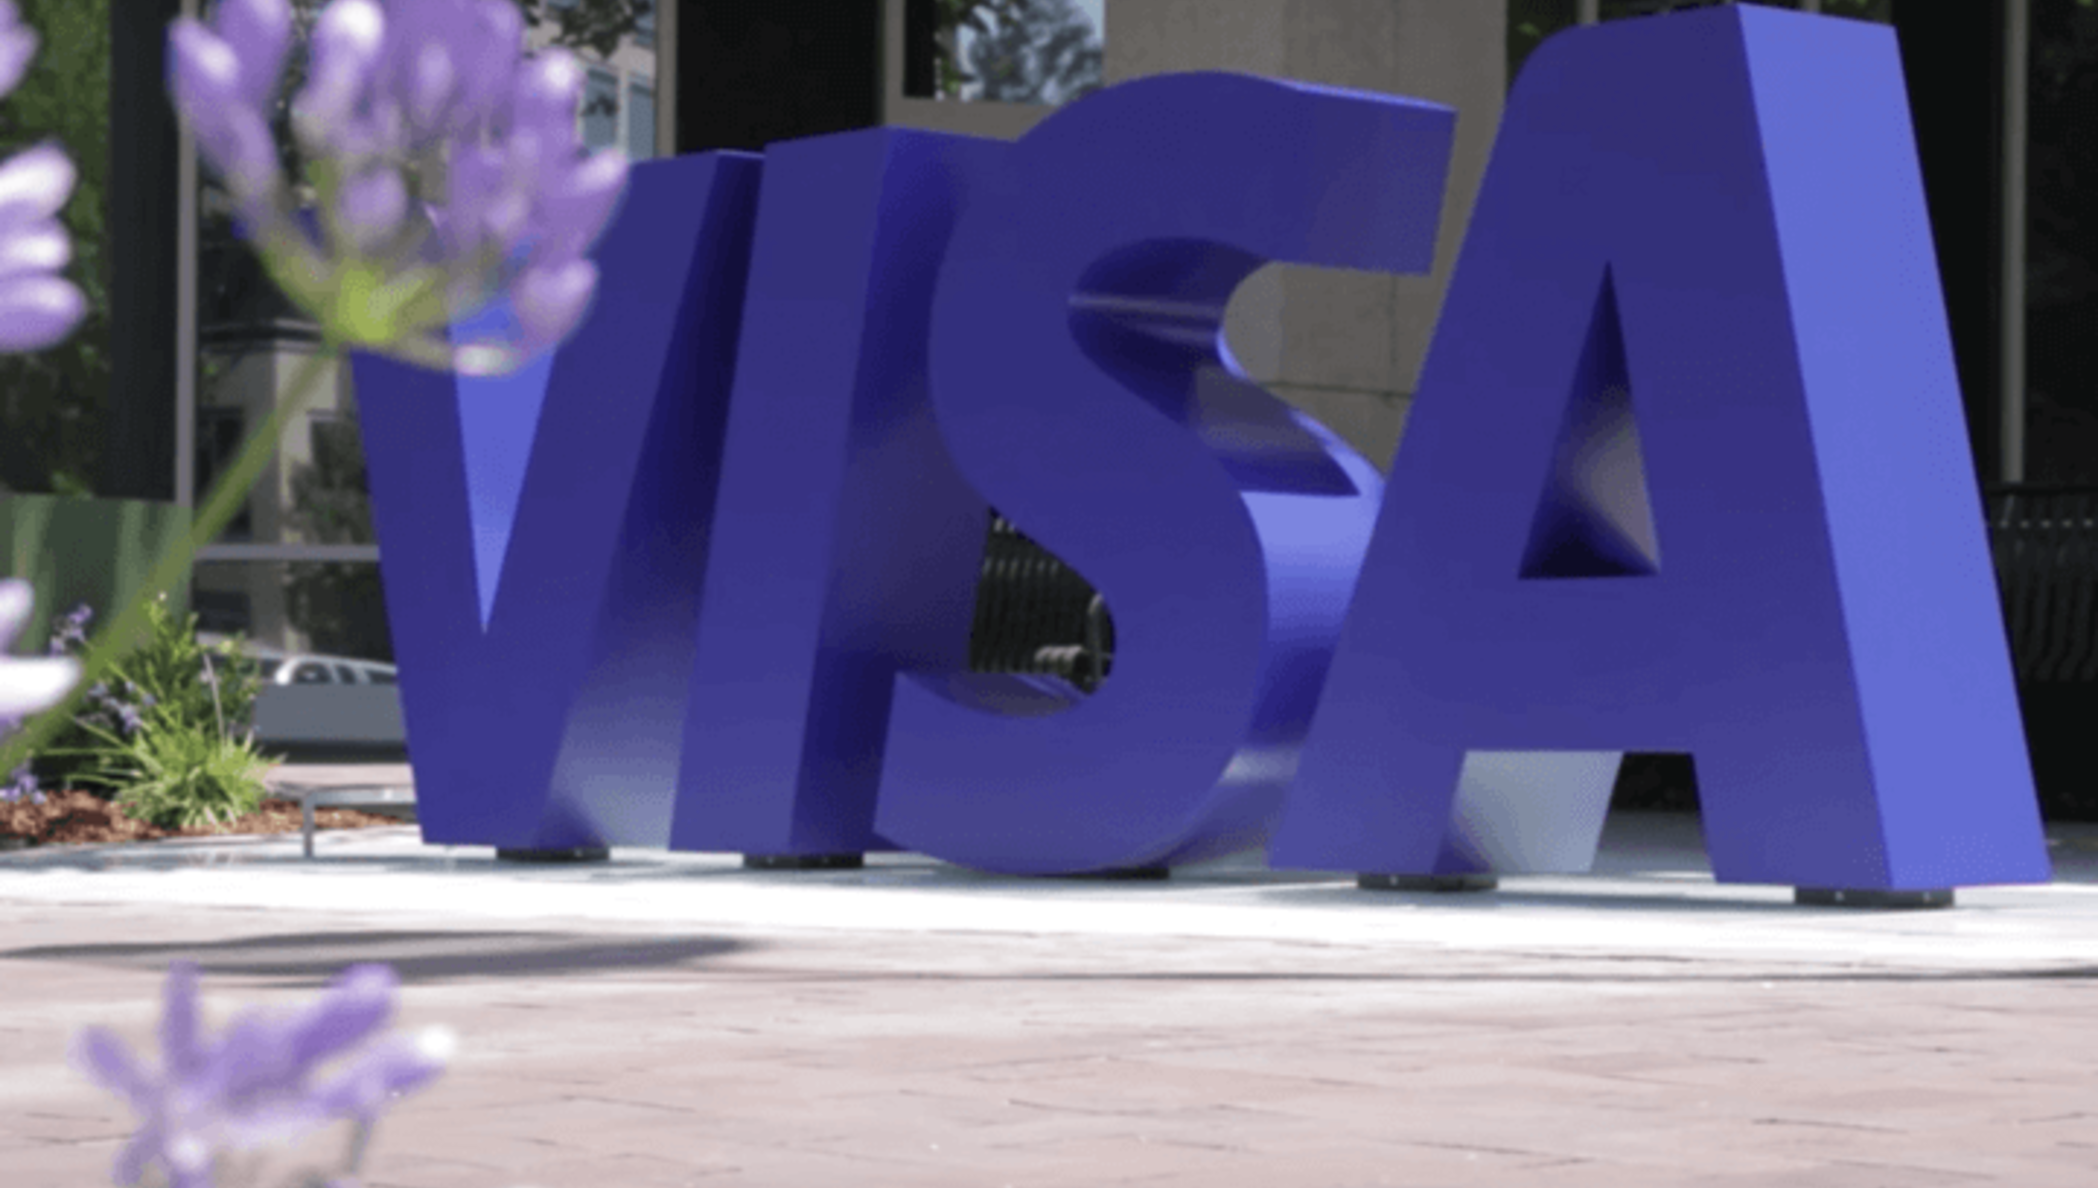 An outdoor sculpture of the VISA logo.